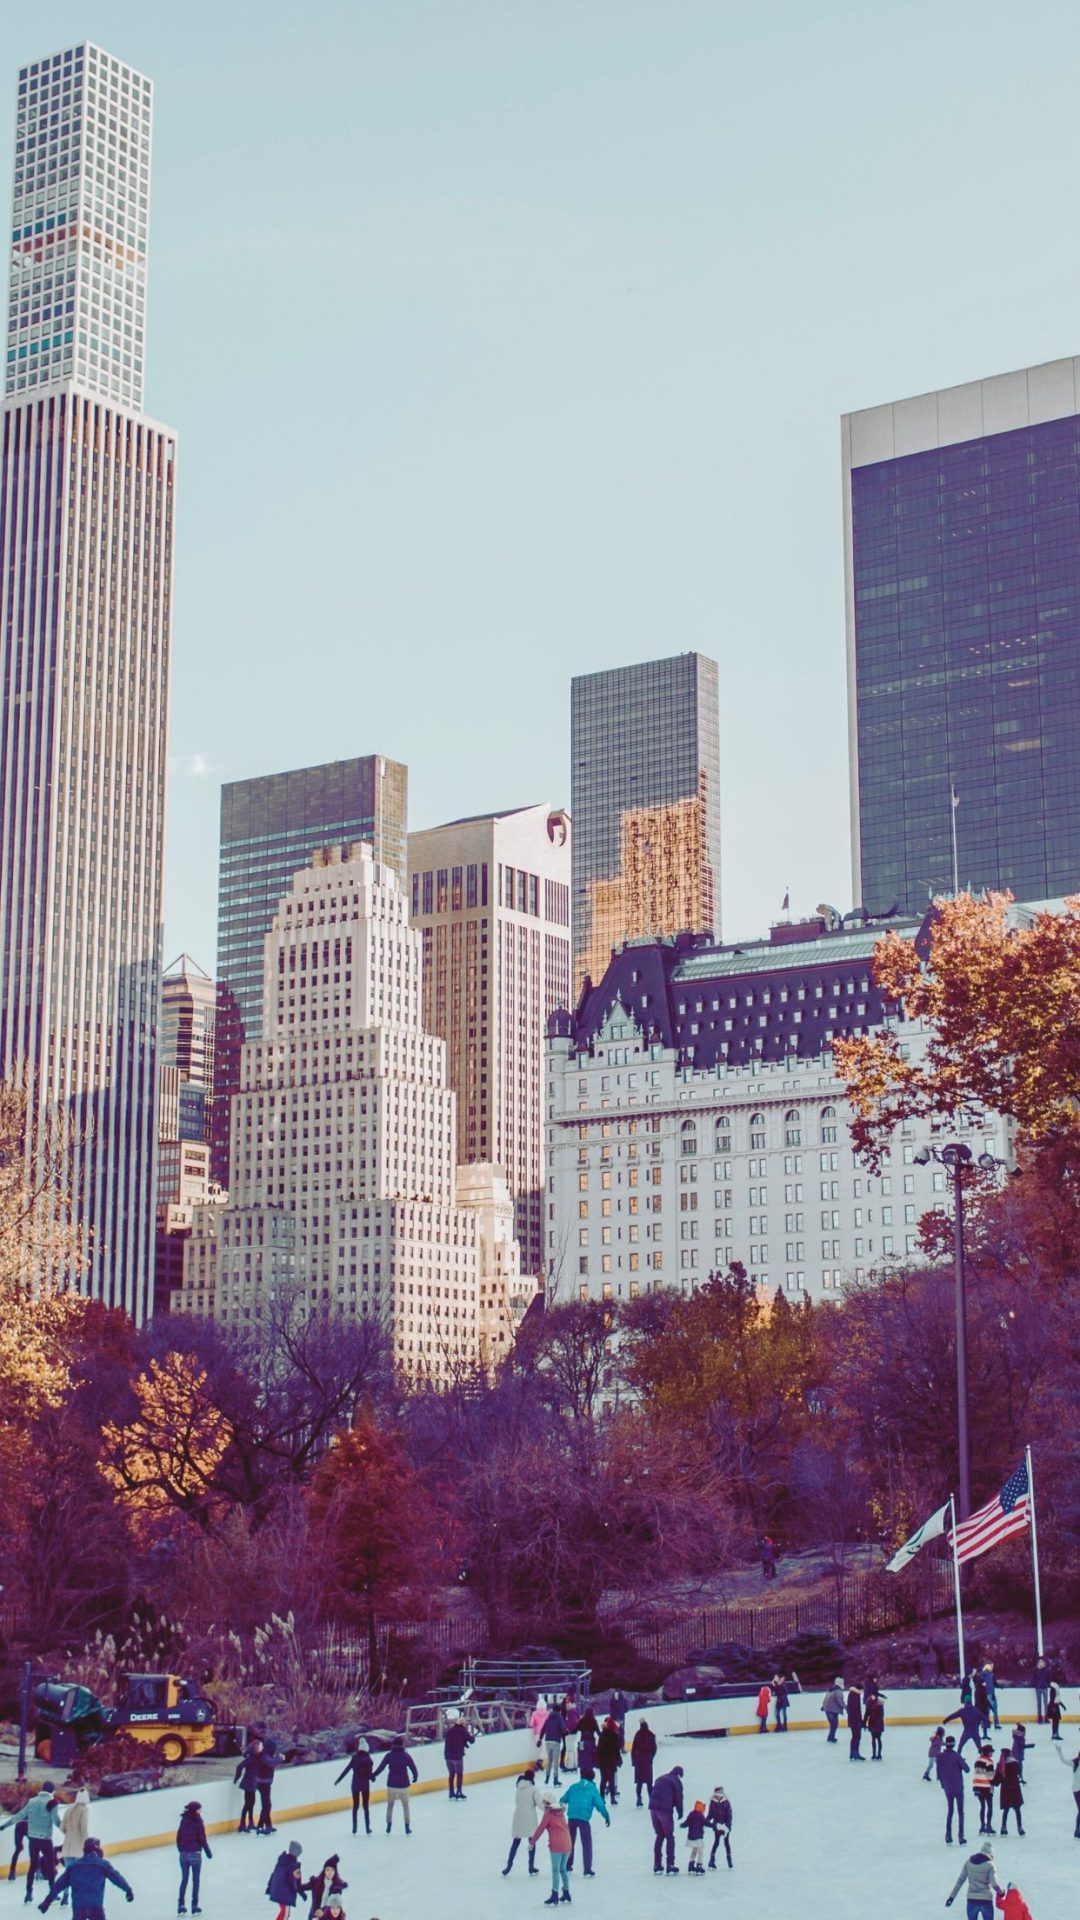 New York City iPhone wallpaper with central park